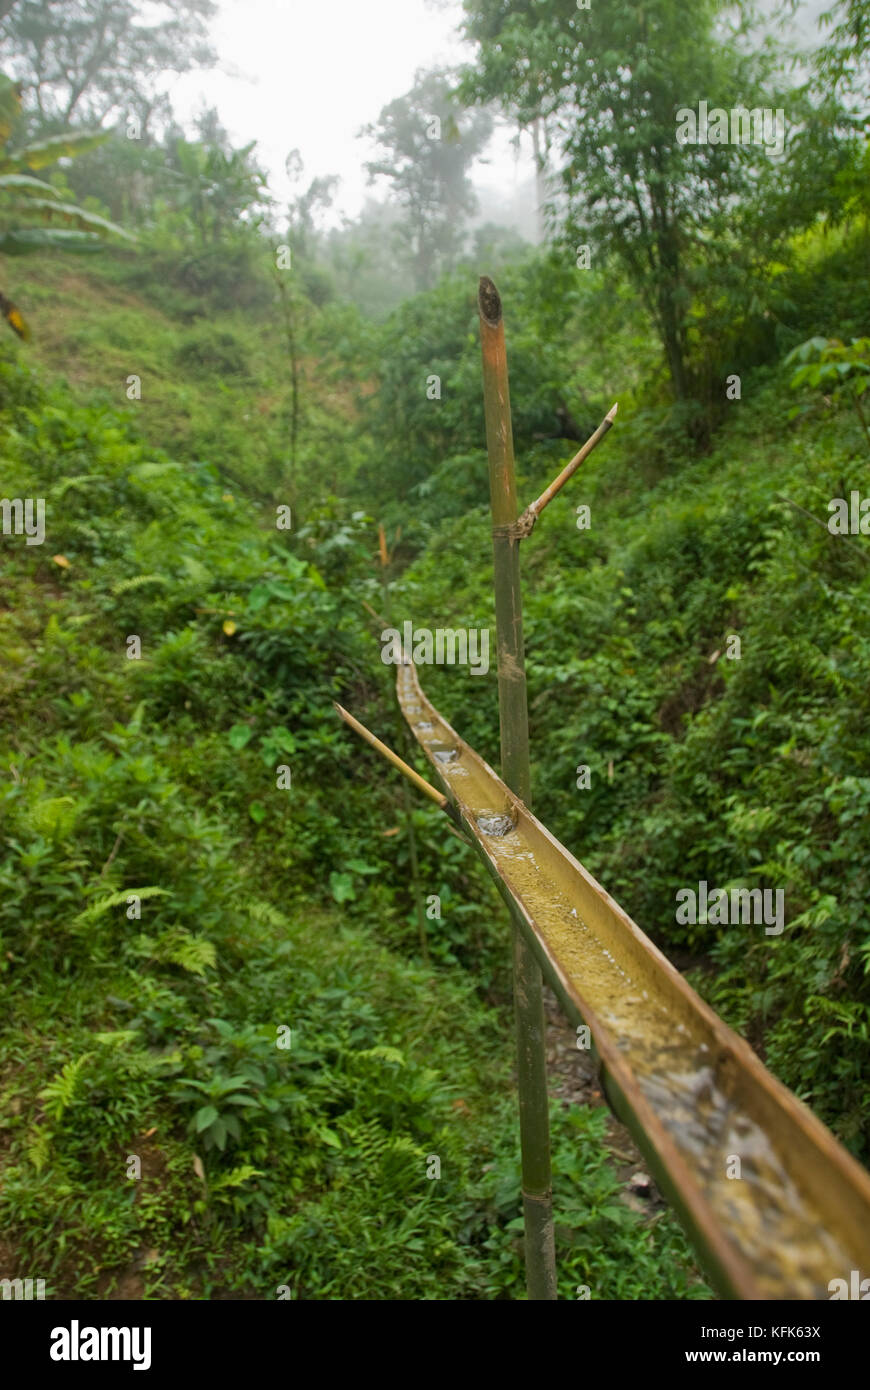 An aqueduct made of bamboo carries water from a small creek to a jug for local residents to collect.  Rainforest Stock Photo